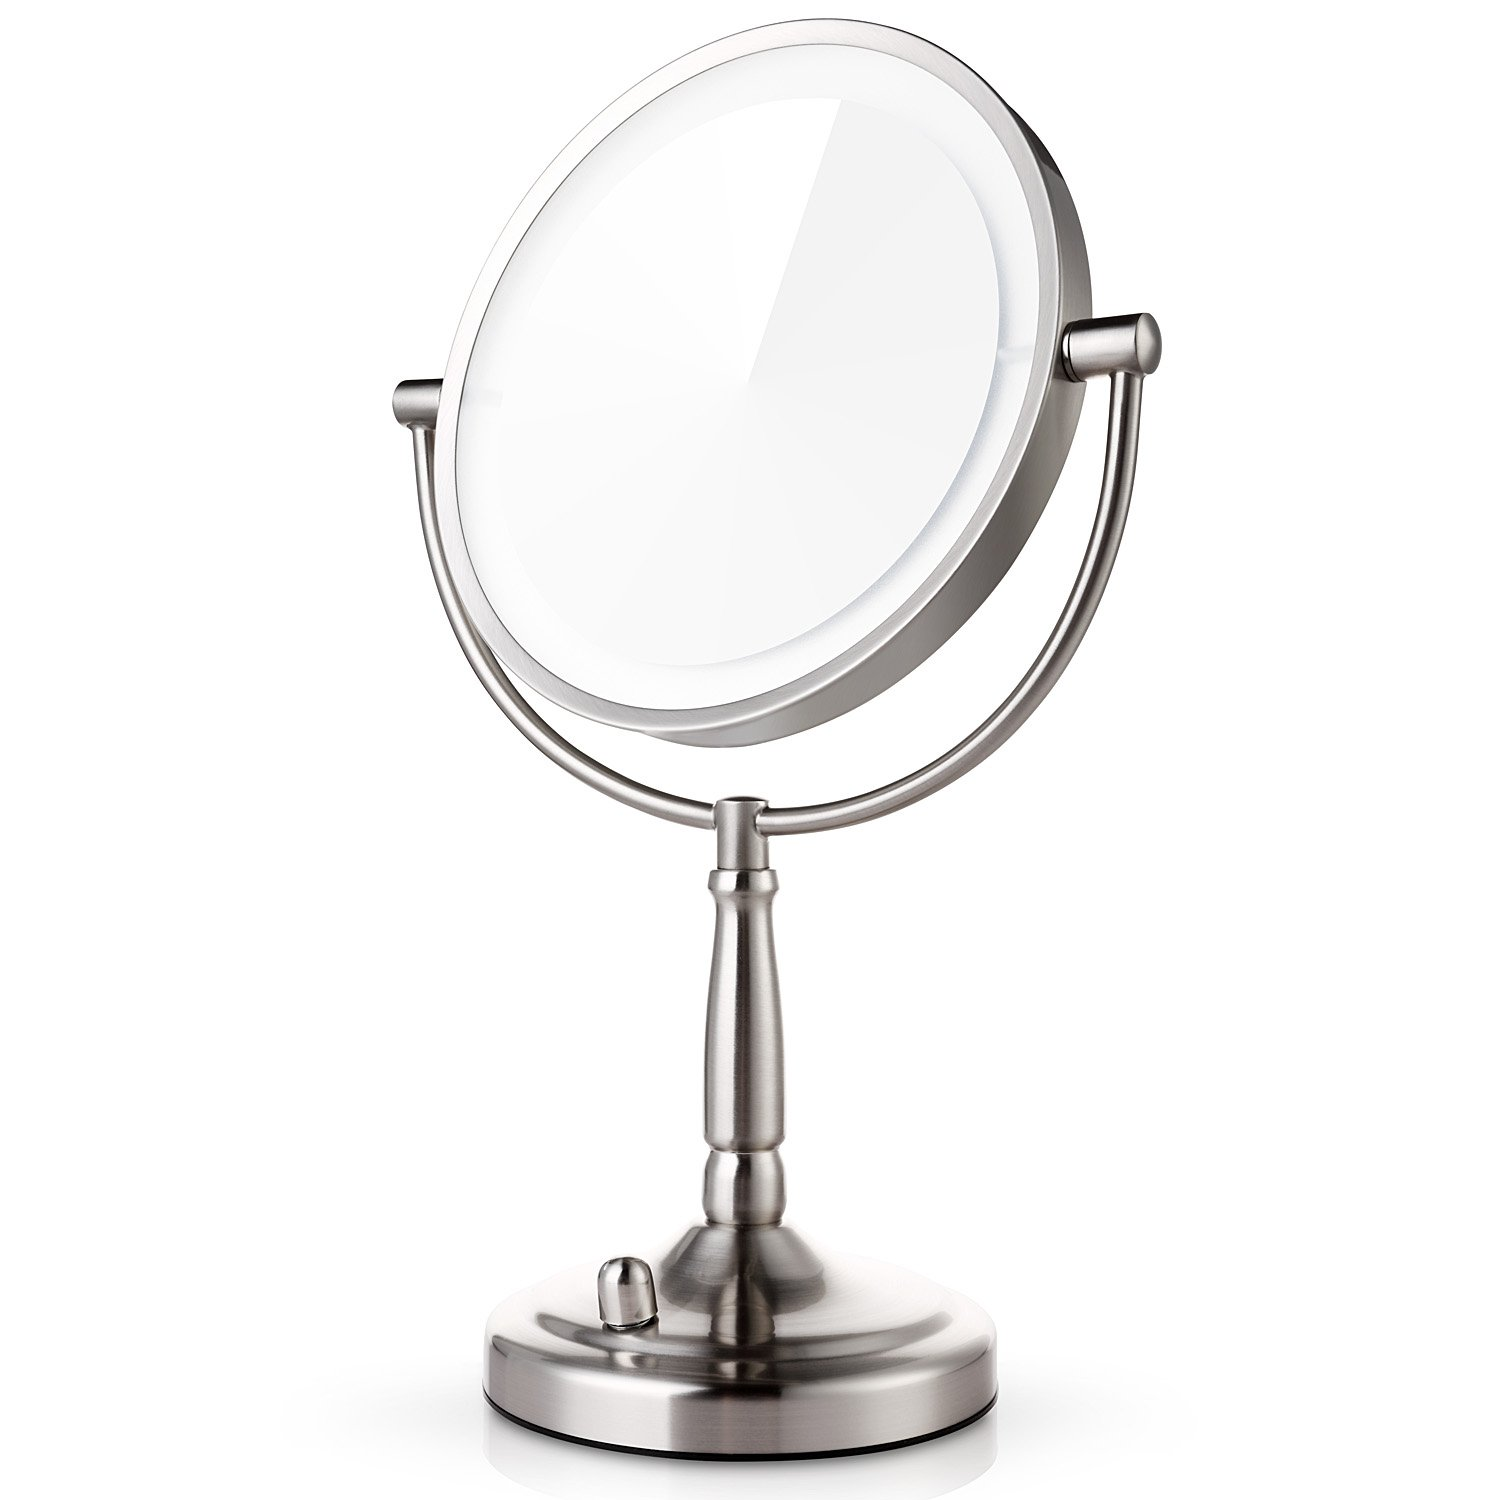 5 best lighted makeup mirrors 2018 top picks and reviews for Beauty mirror